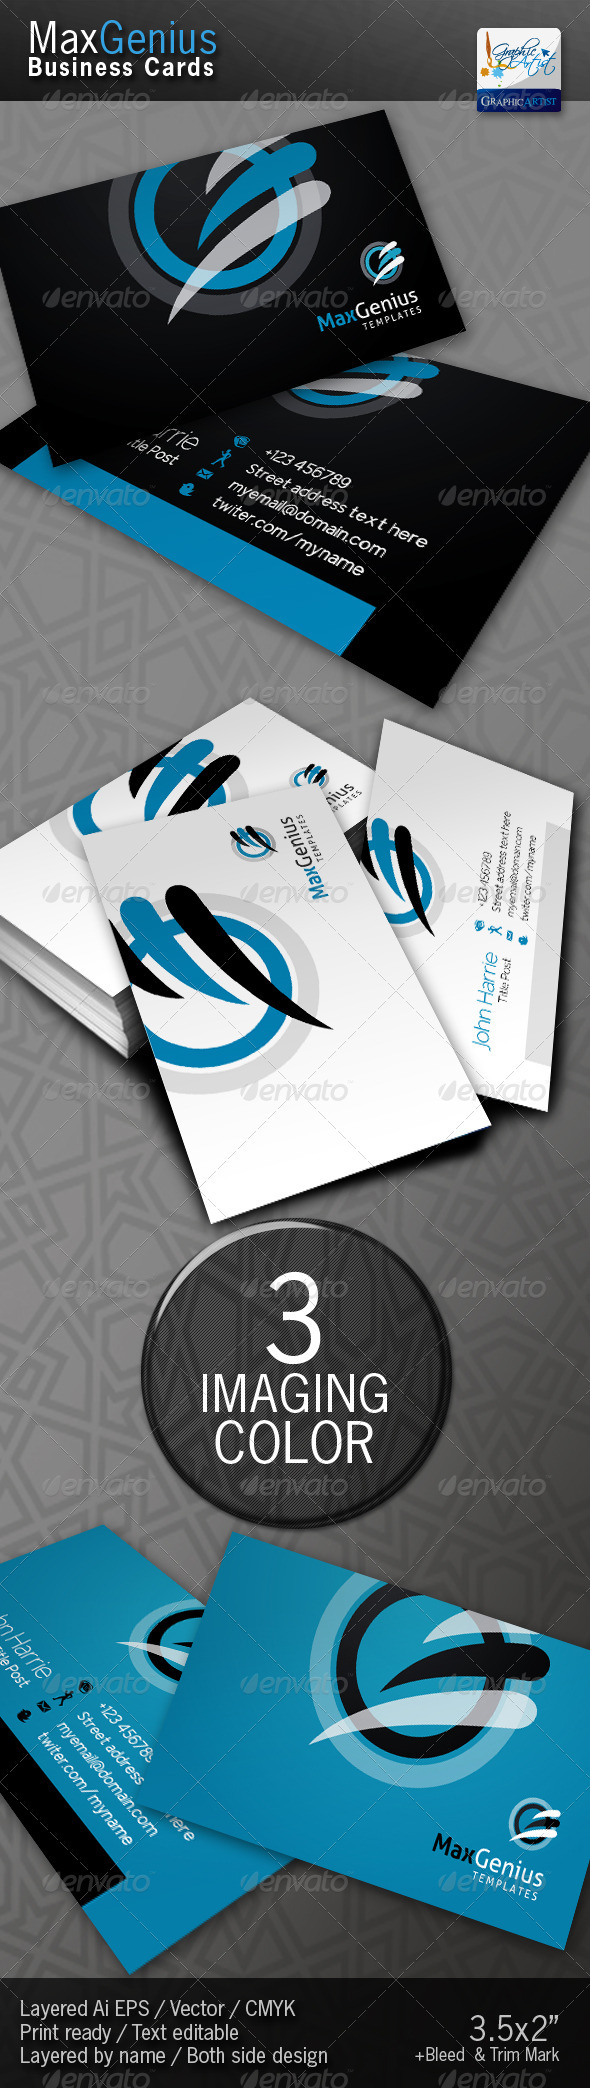 MaxGenius Business Cards - Corporate Business Cards